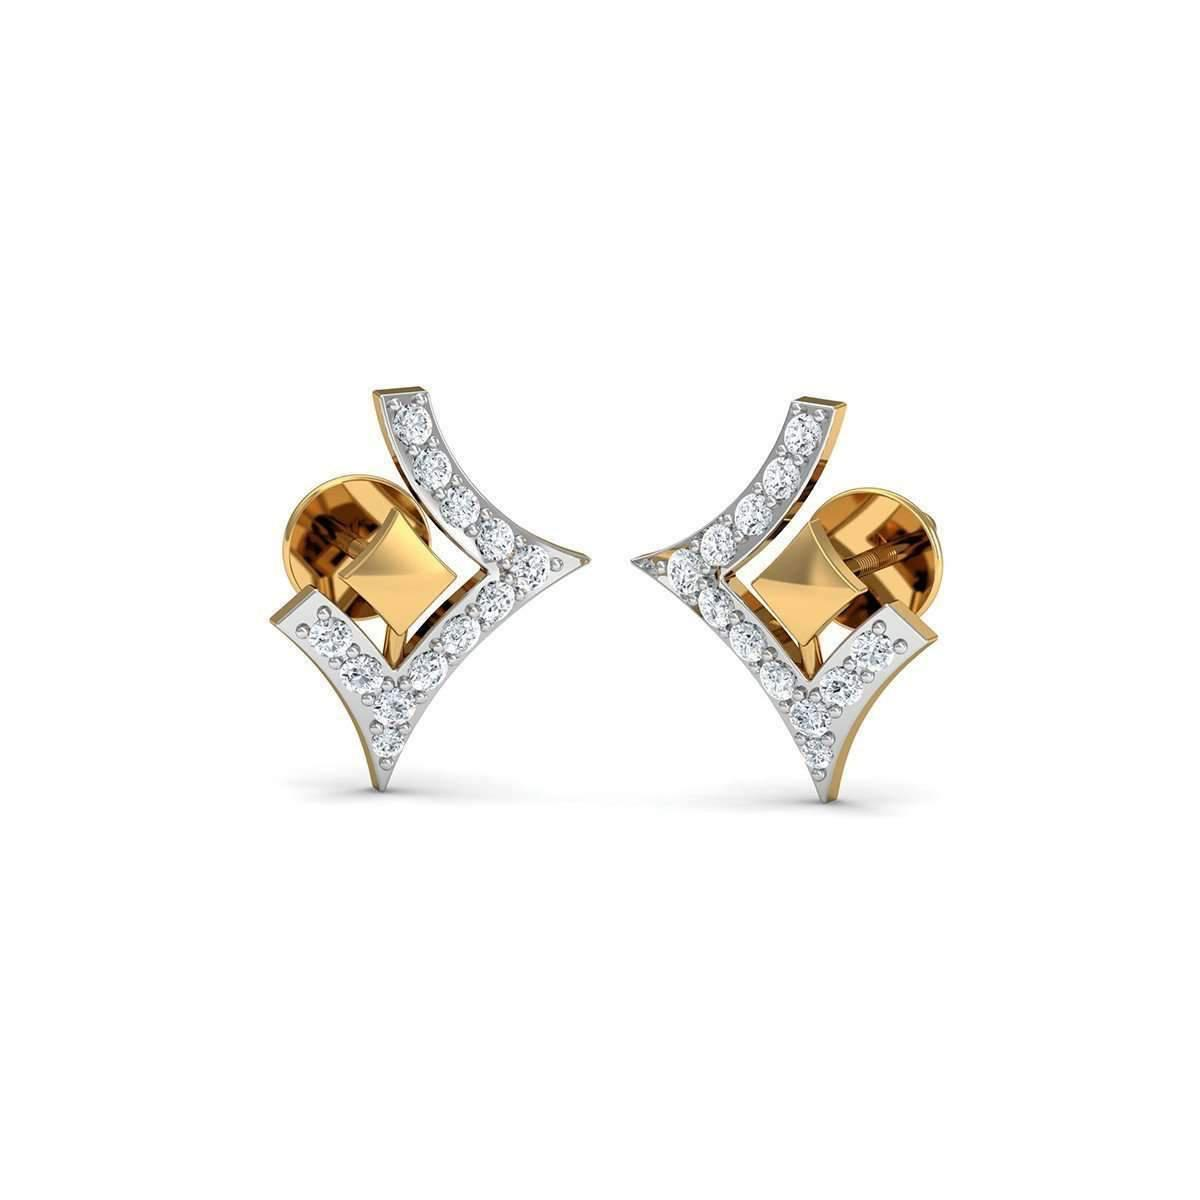 Diamoire Jewels Pave-Prong Diamond and 18kt White Gold Earrings Inspired by Nature iRRrh8